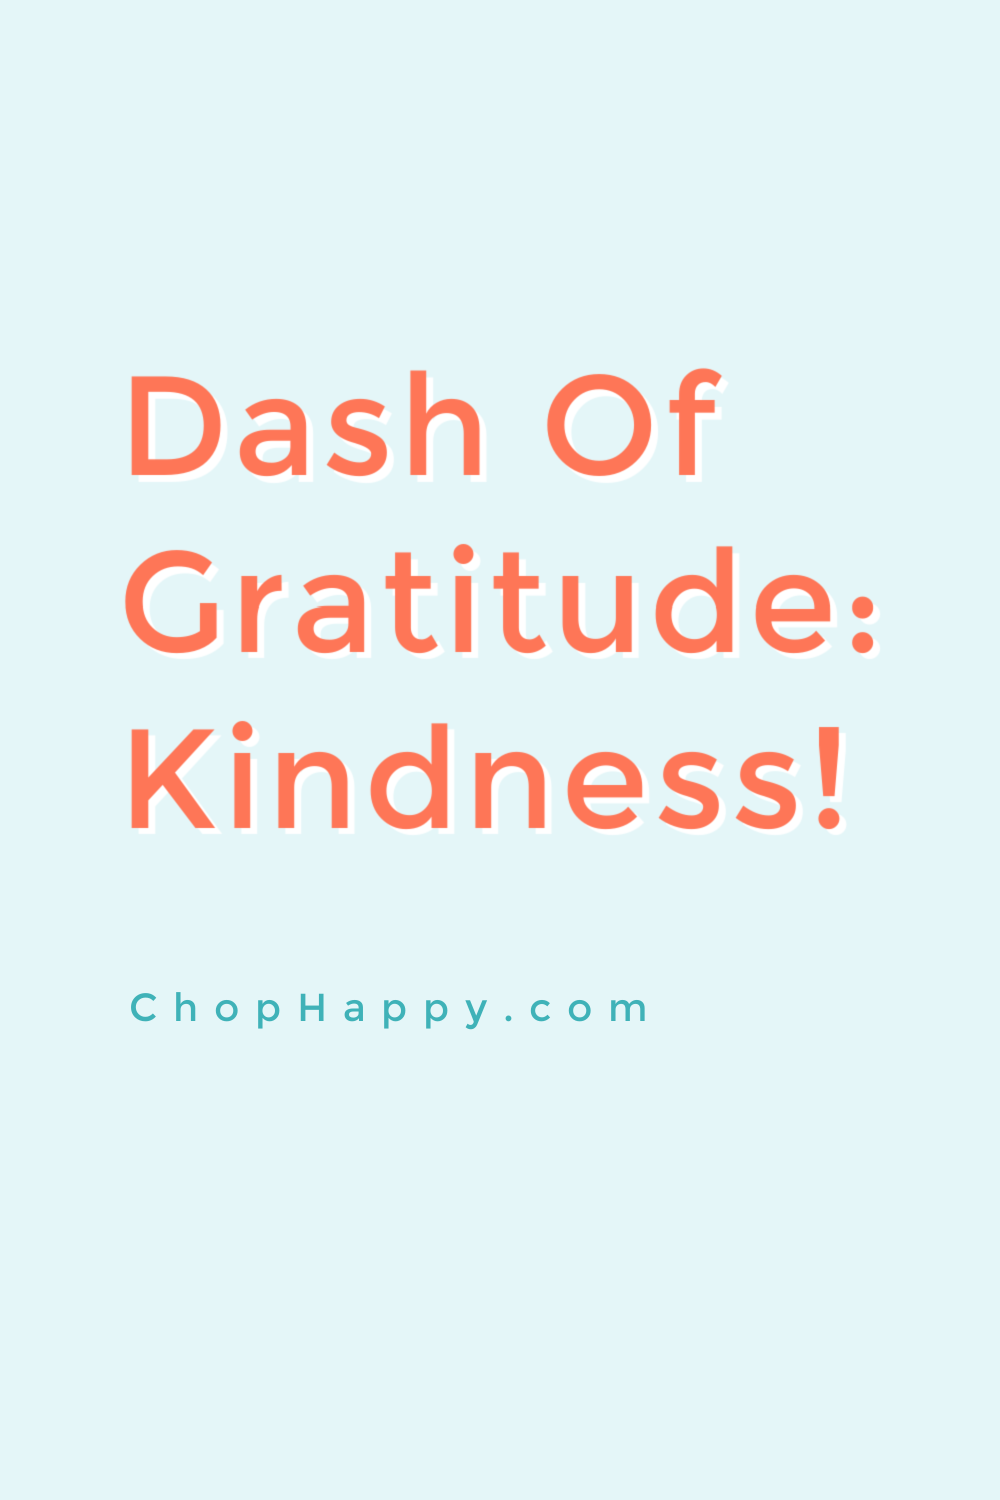 Dash of Gratitude: Kindness. Use the law of attraction nd manifesting to make kindness your norm. Happy Dreaming! www.ChopHappy.com #lawofattraction #gratitude